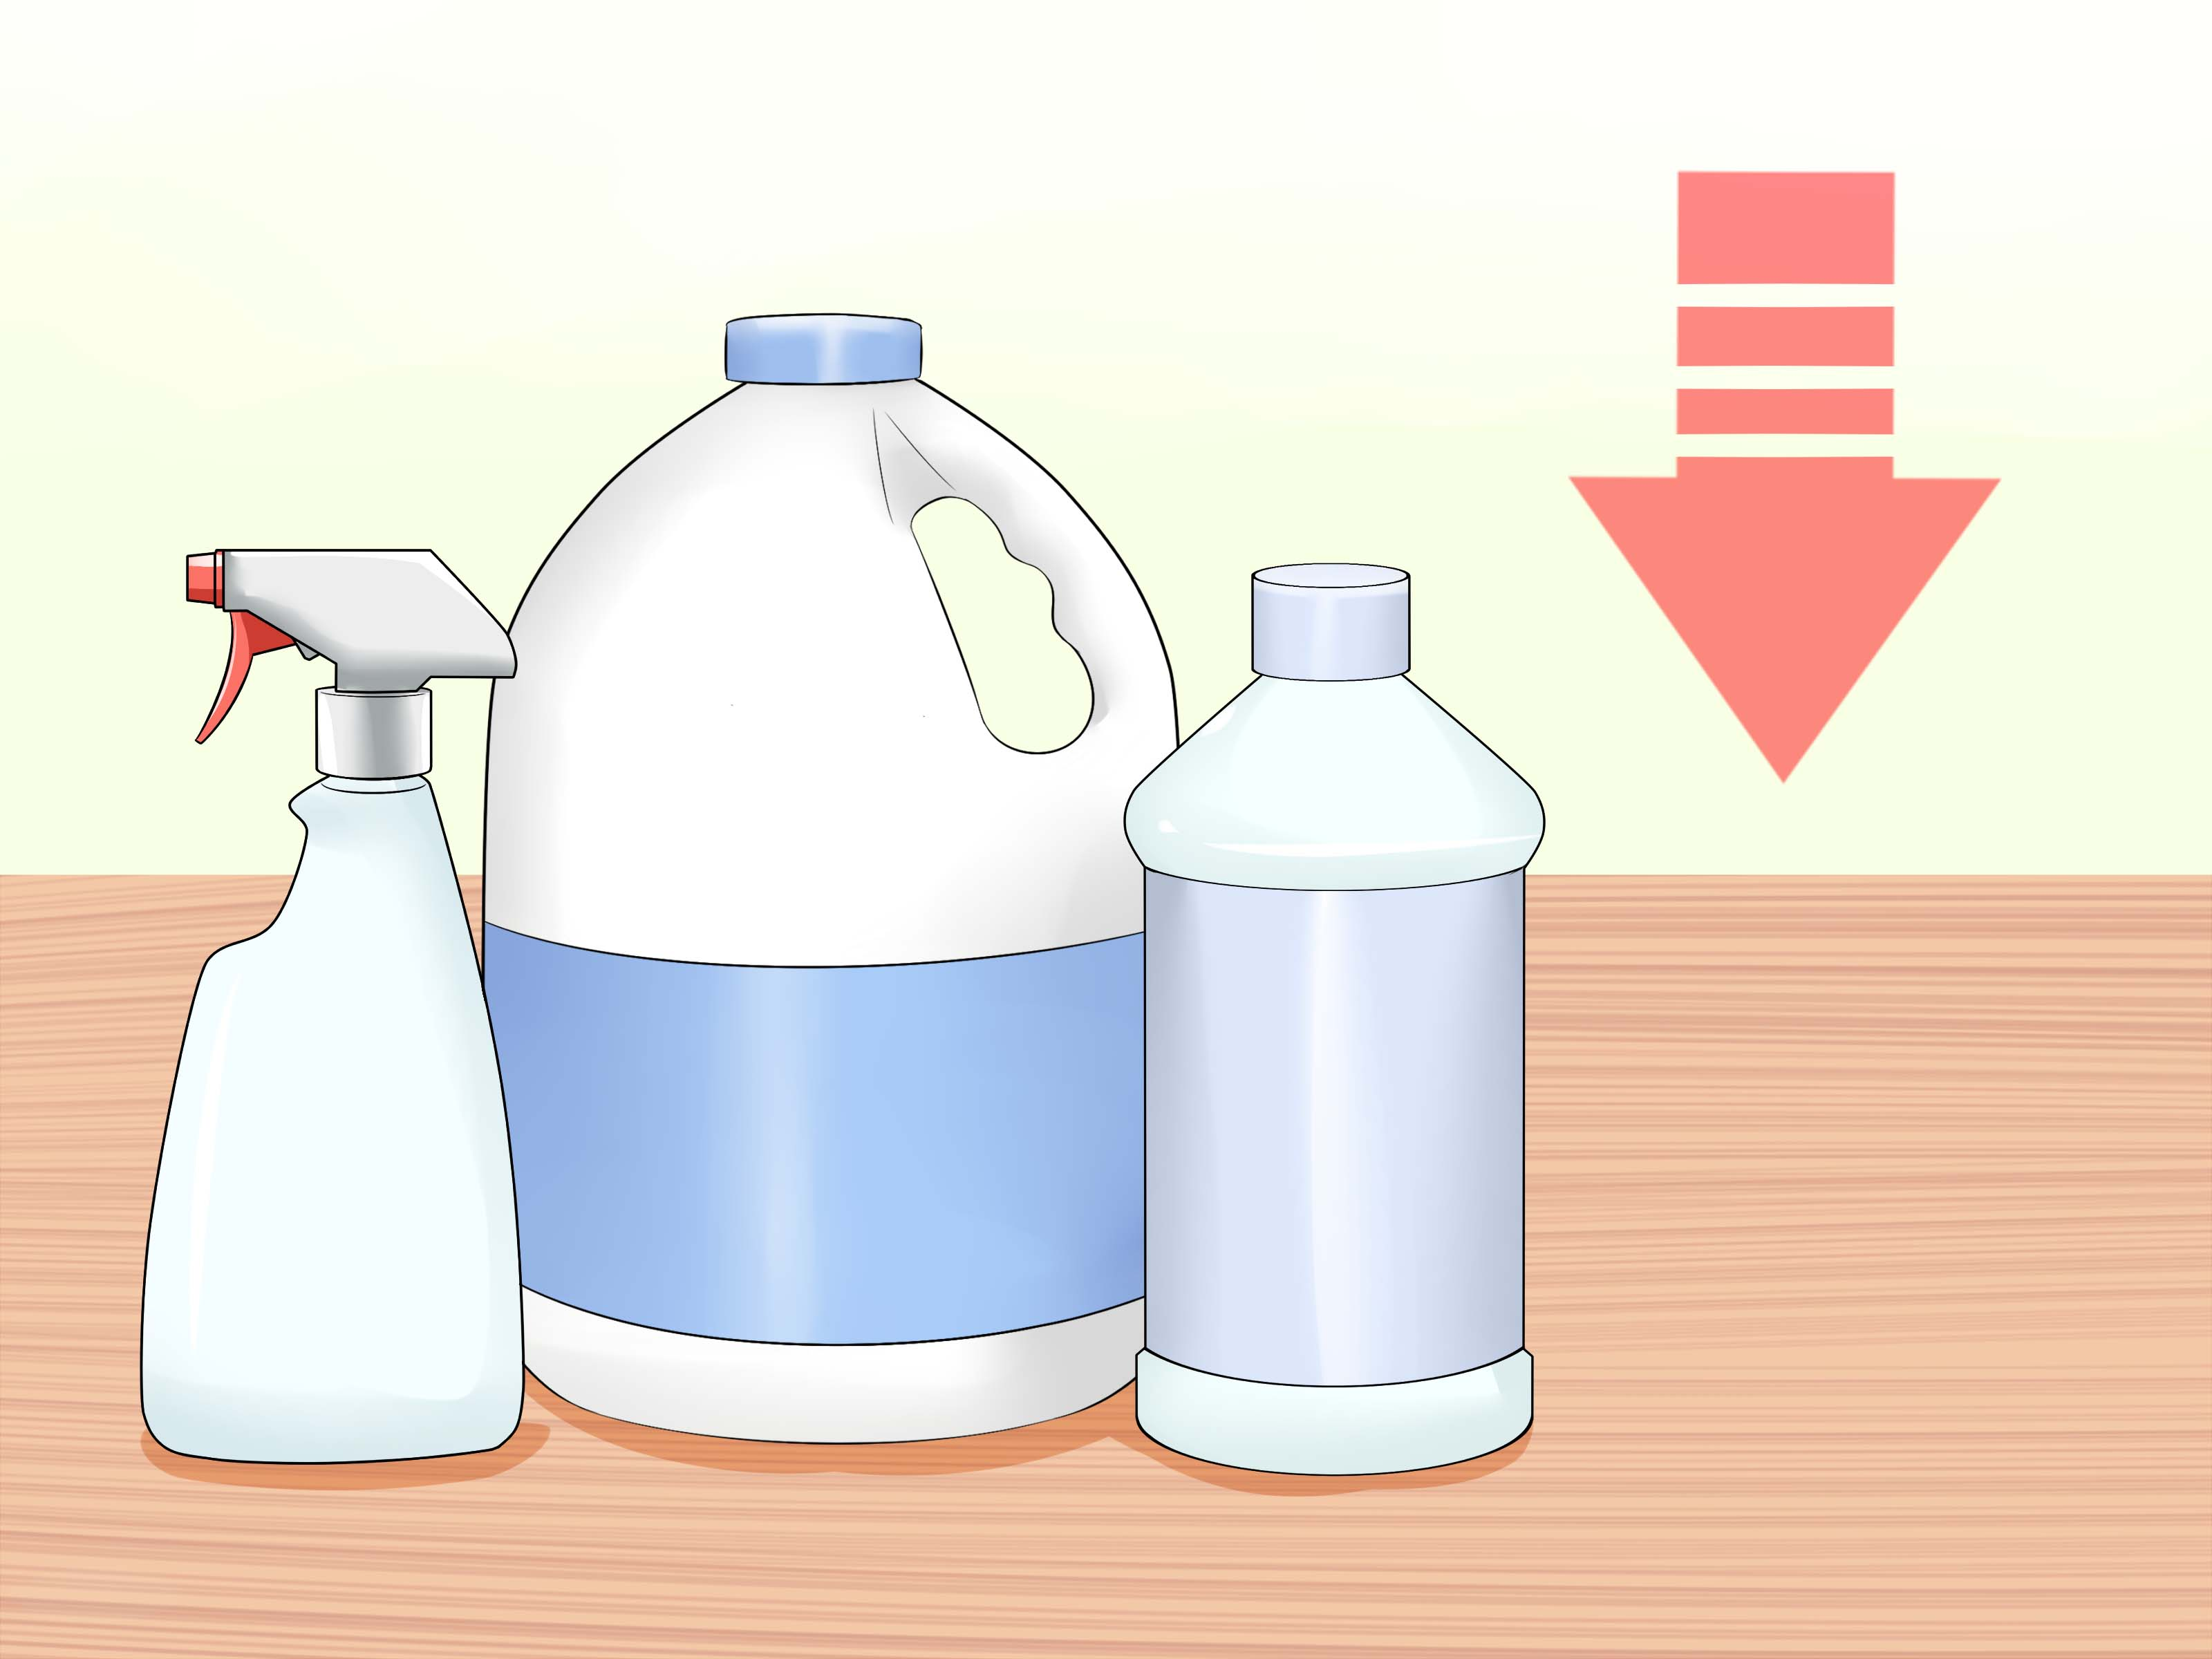 How to Look After Your Pet Rabbit in an Environmentally Friendly Way.